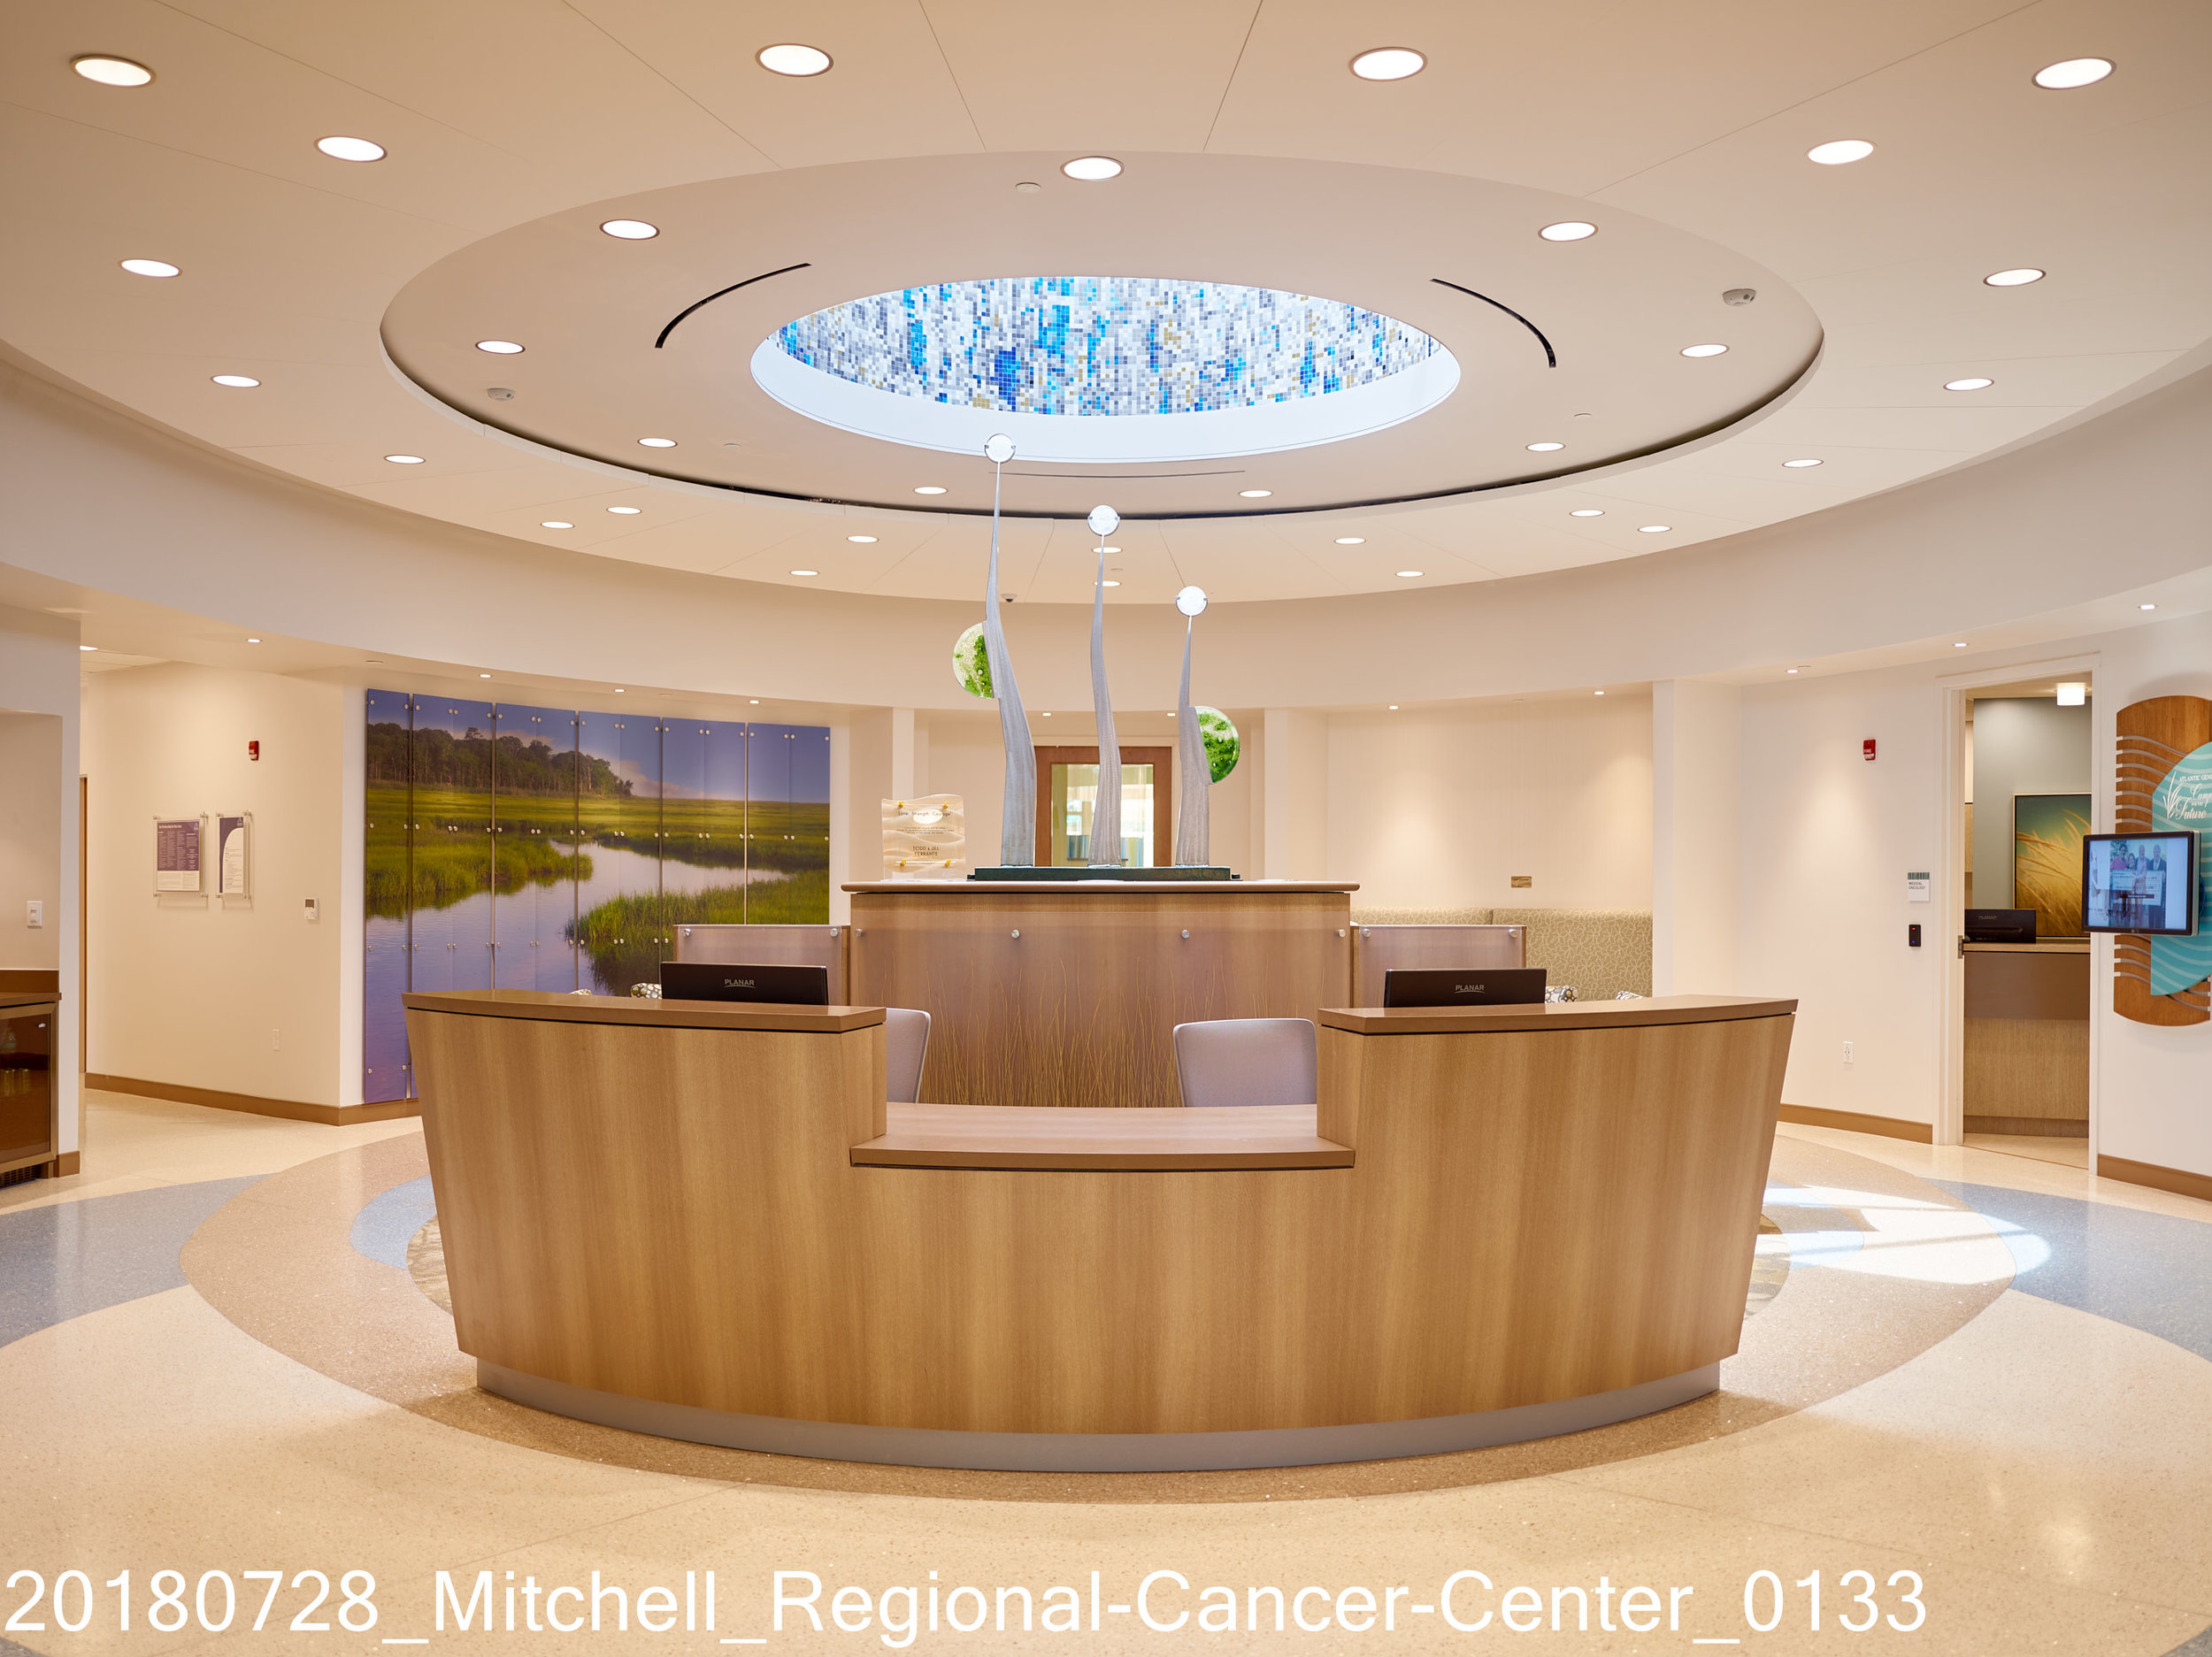 20180728_Mitchell_Regional-Cancer-Center_0133.jpg